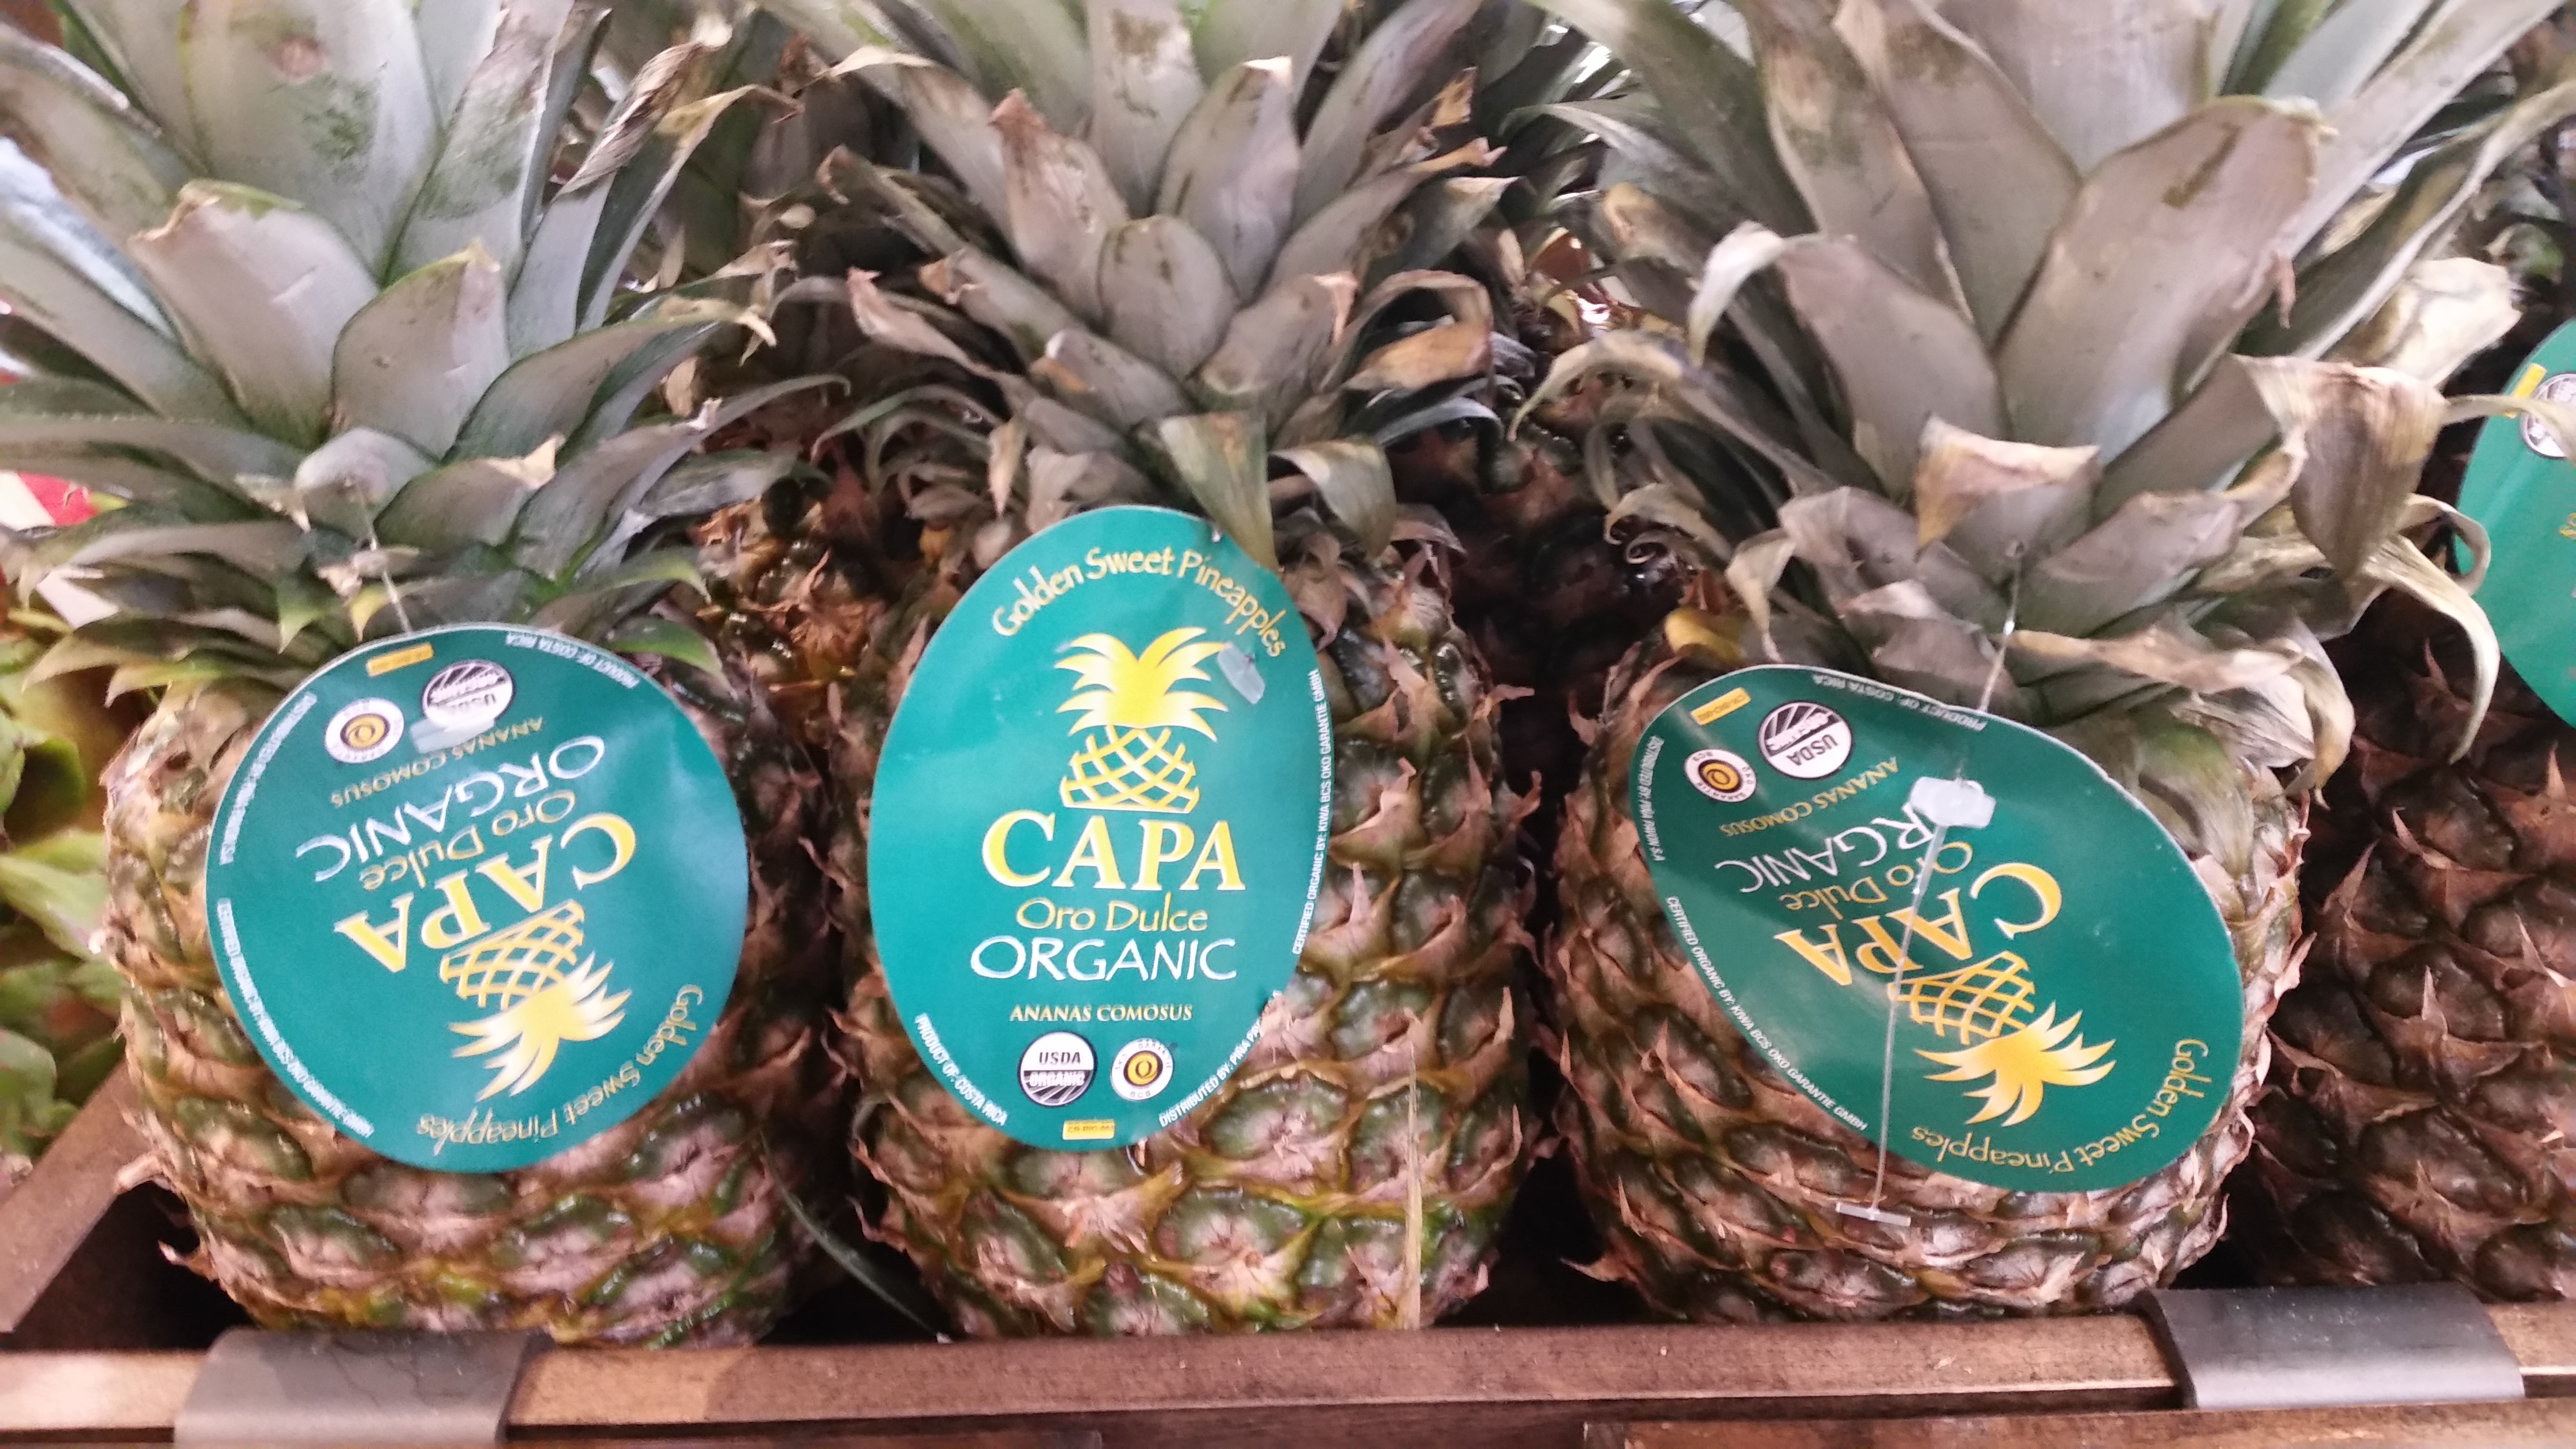 Capa Oro Dulce organic pineapples from Costa Rica.